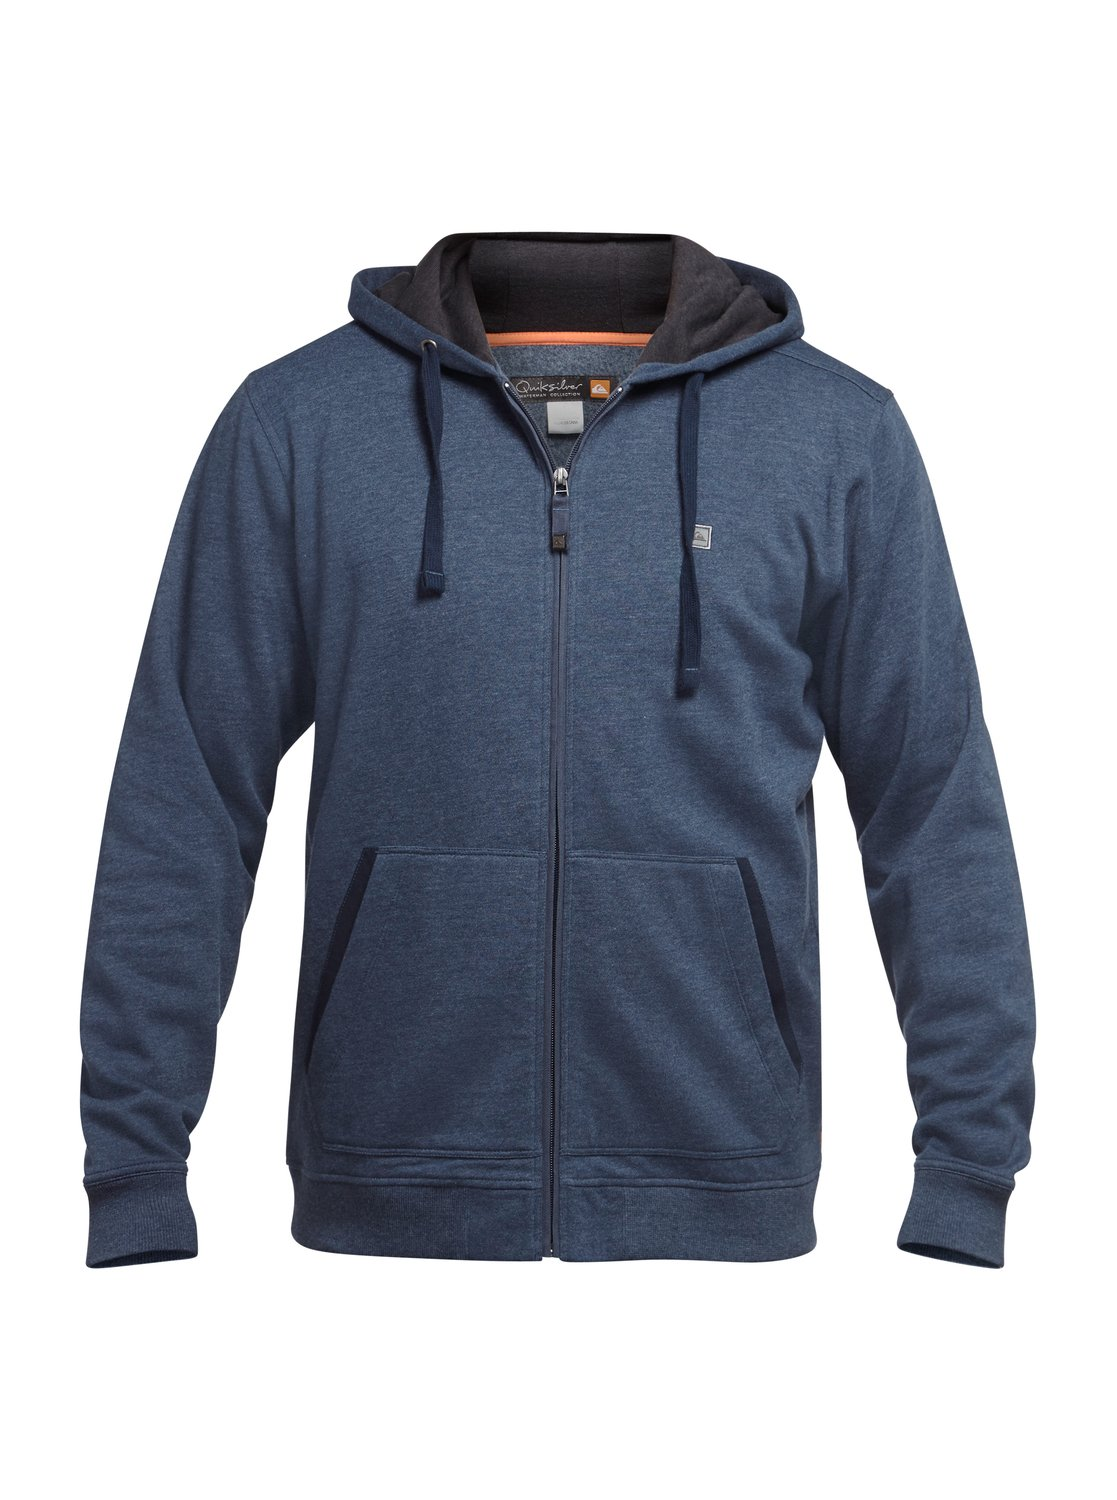 Cute Hoodies + Sweatshirts for Women. Sweatshirts, to us, are the more casual counterpart to sweaters. Whether you pull them over, zip them up or drape them, there's nothing better to keep in your bag for whatever the day brings.